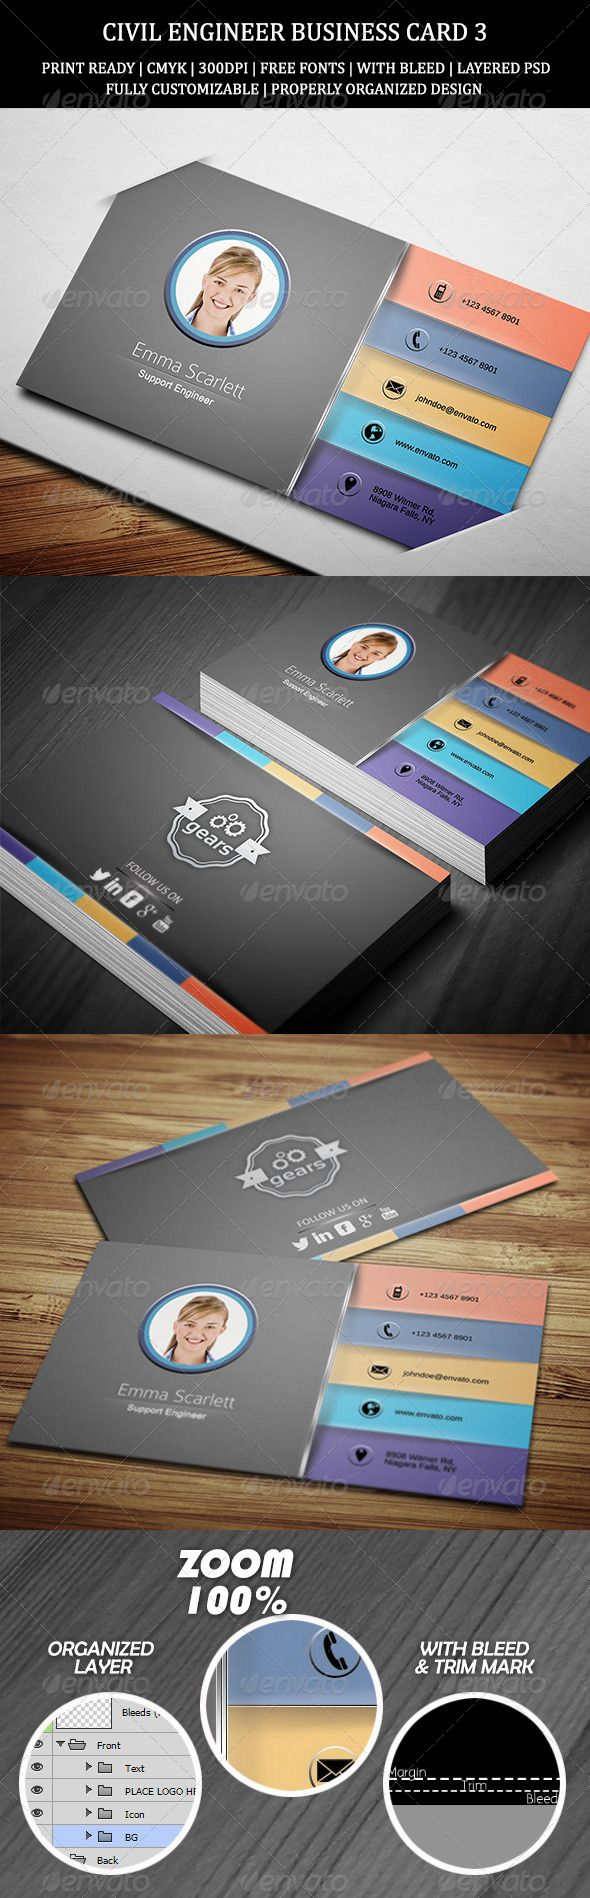 civil engineer business card 3 print templates business cards